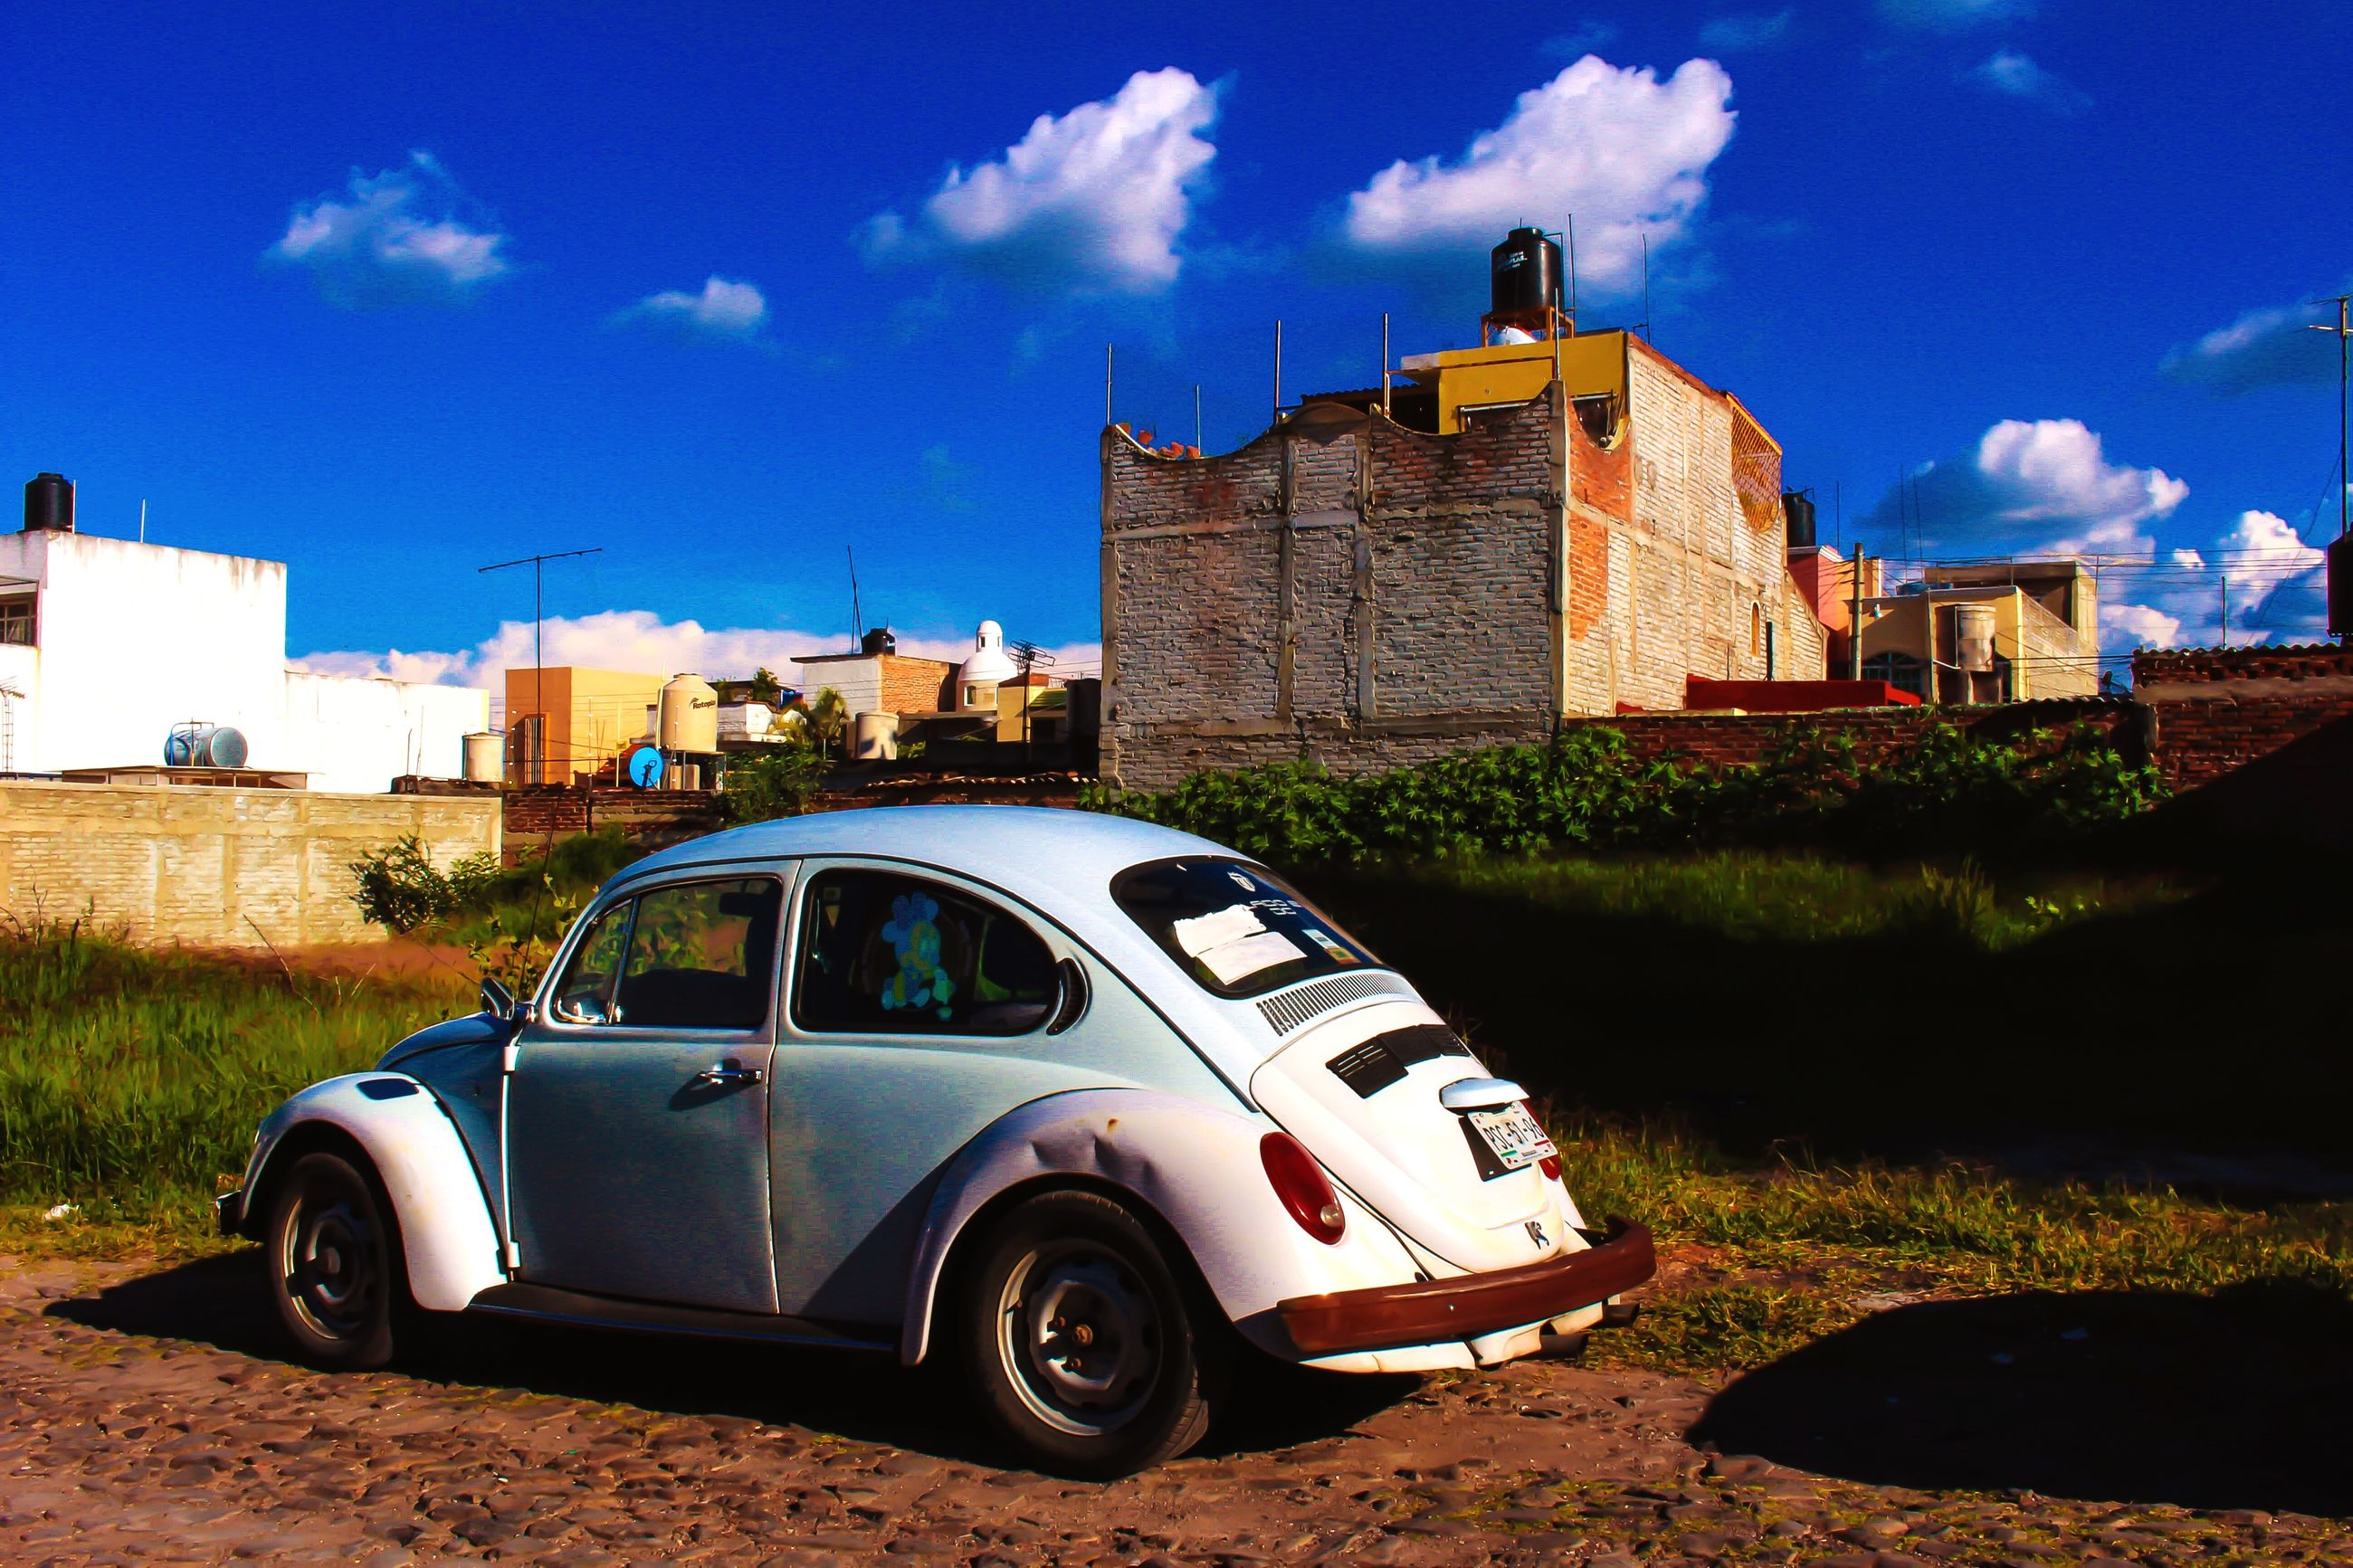 building exterior, architecture, built structure, transportation, sky, land vehicle, car, mode of transport, blue, road, cloud, day, cloud - sky, grass, sunlight, old, street, outdoors, abandoned, no people